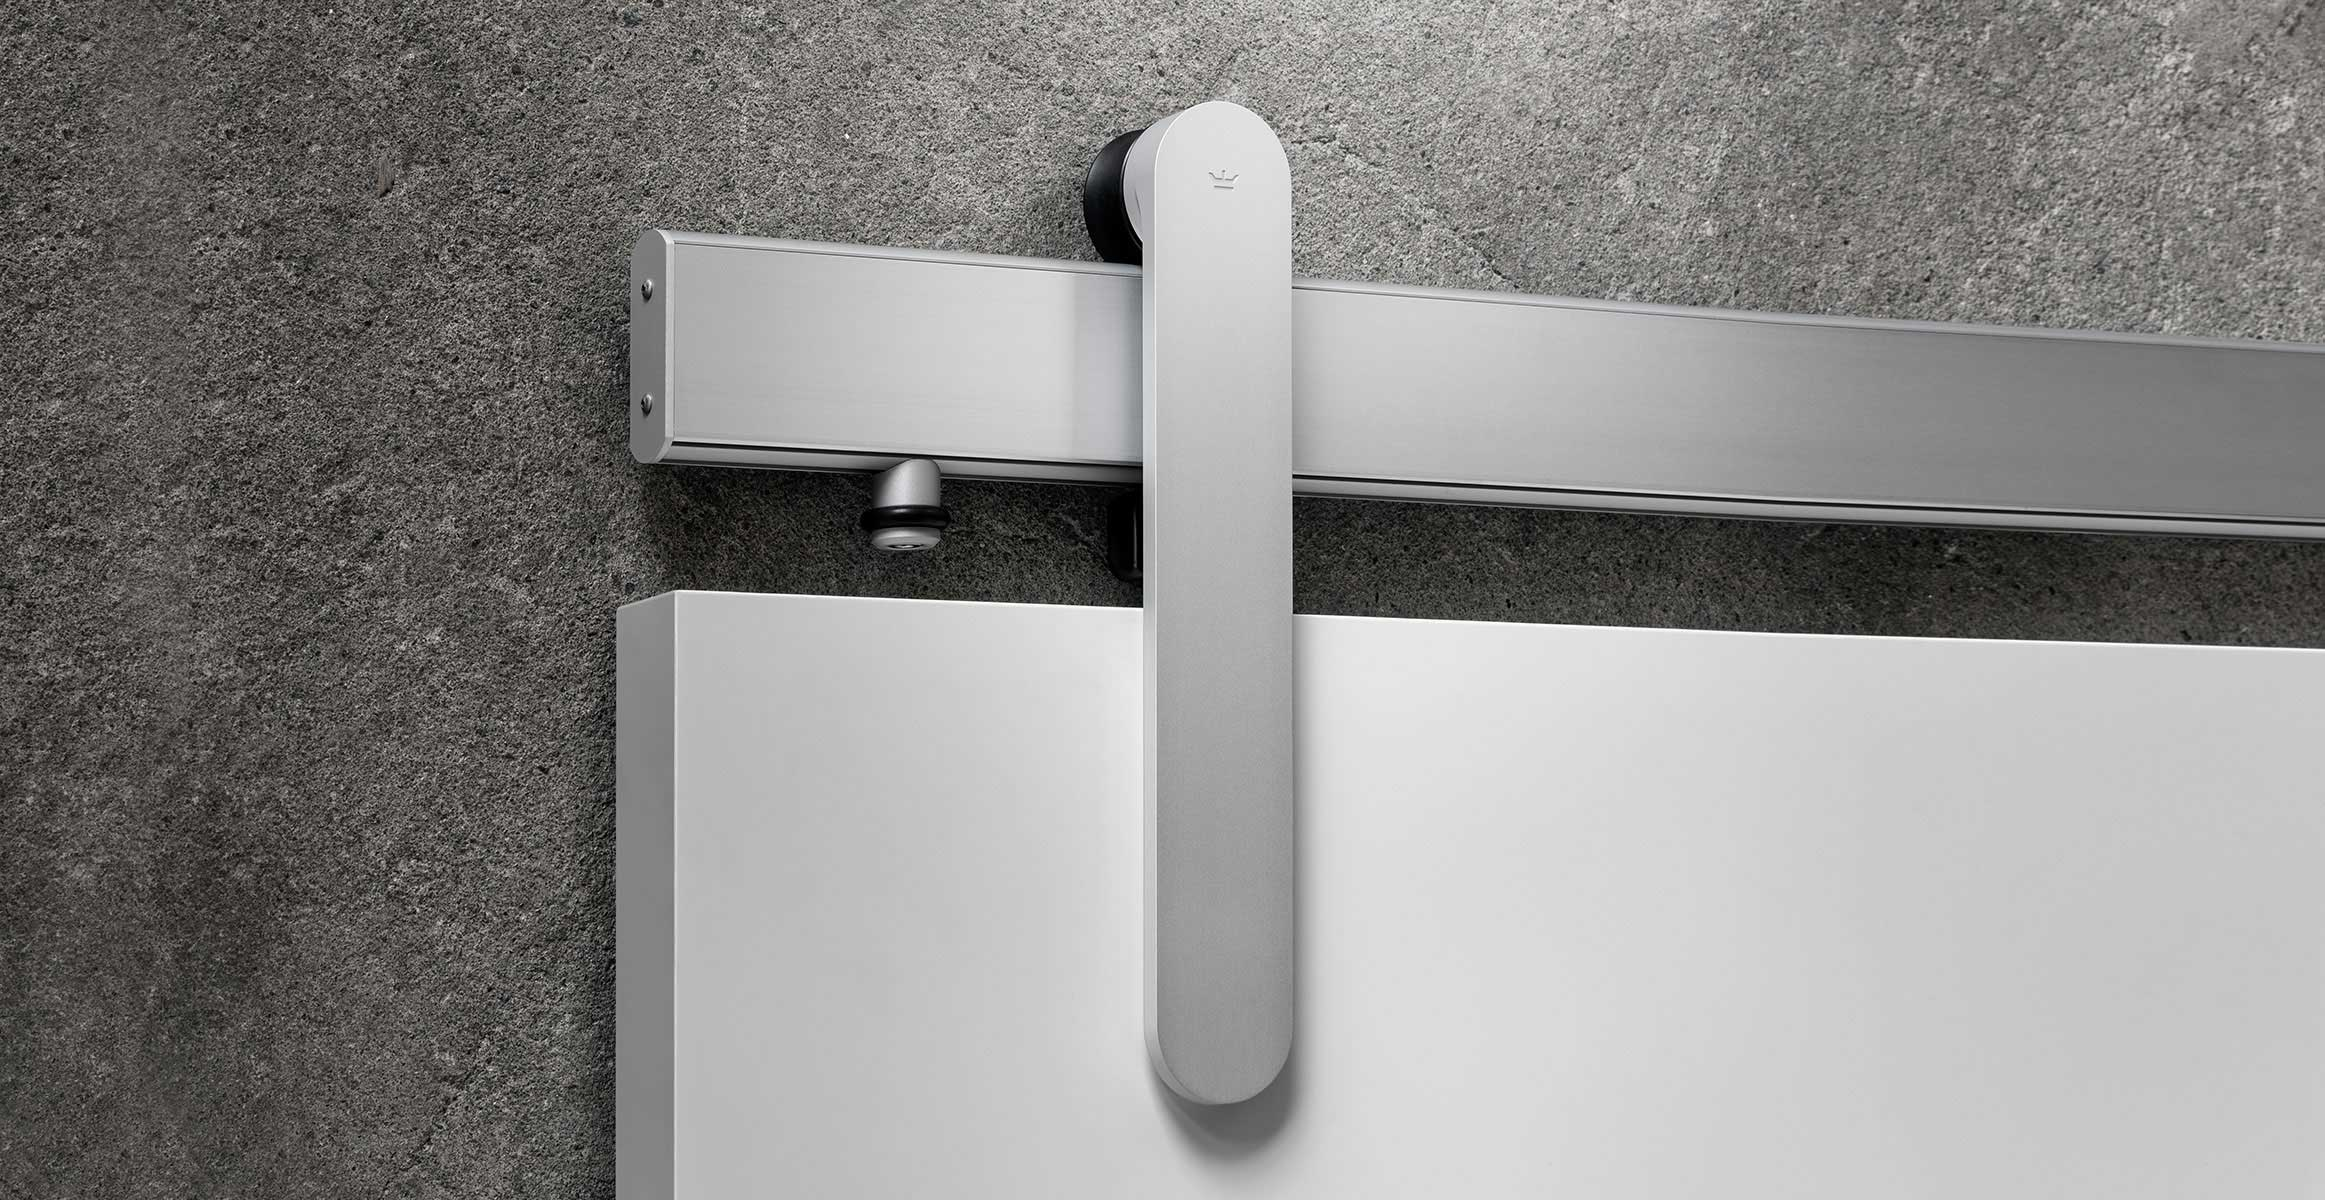 Loki sliding door hardware in Satin Silver finish with white door panel